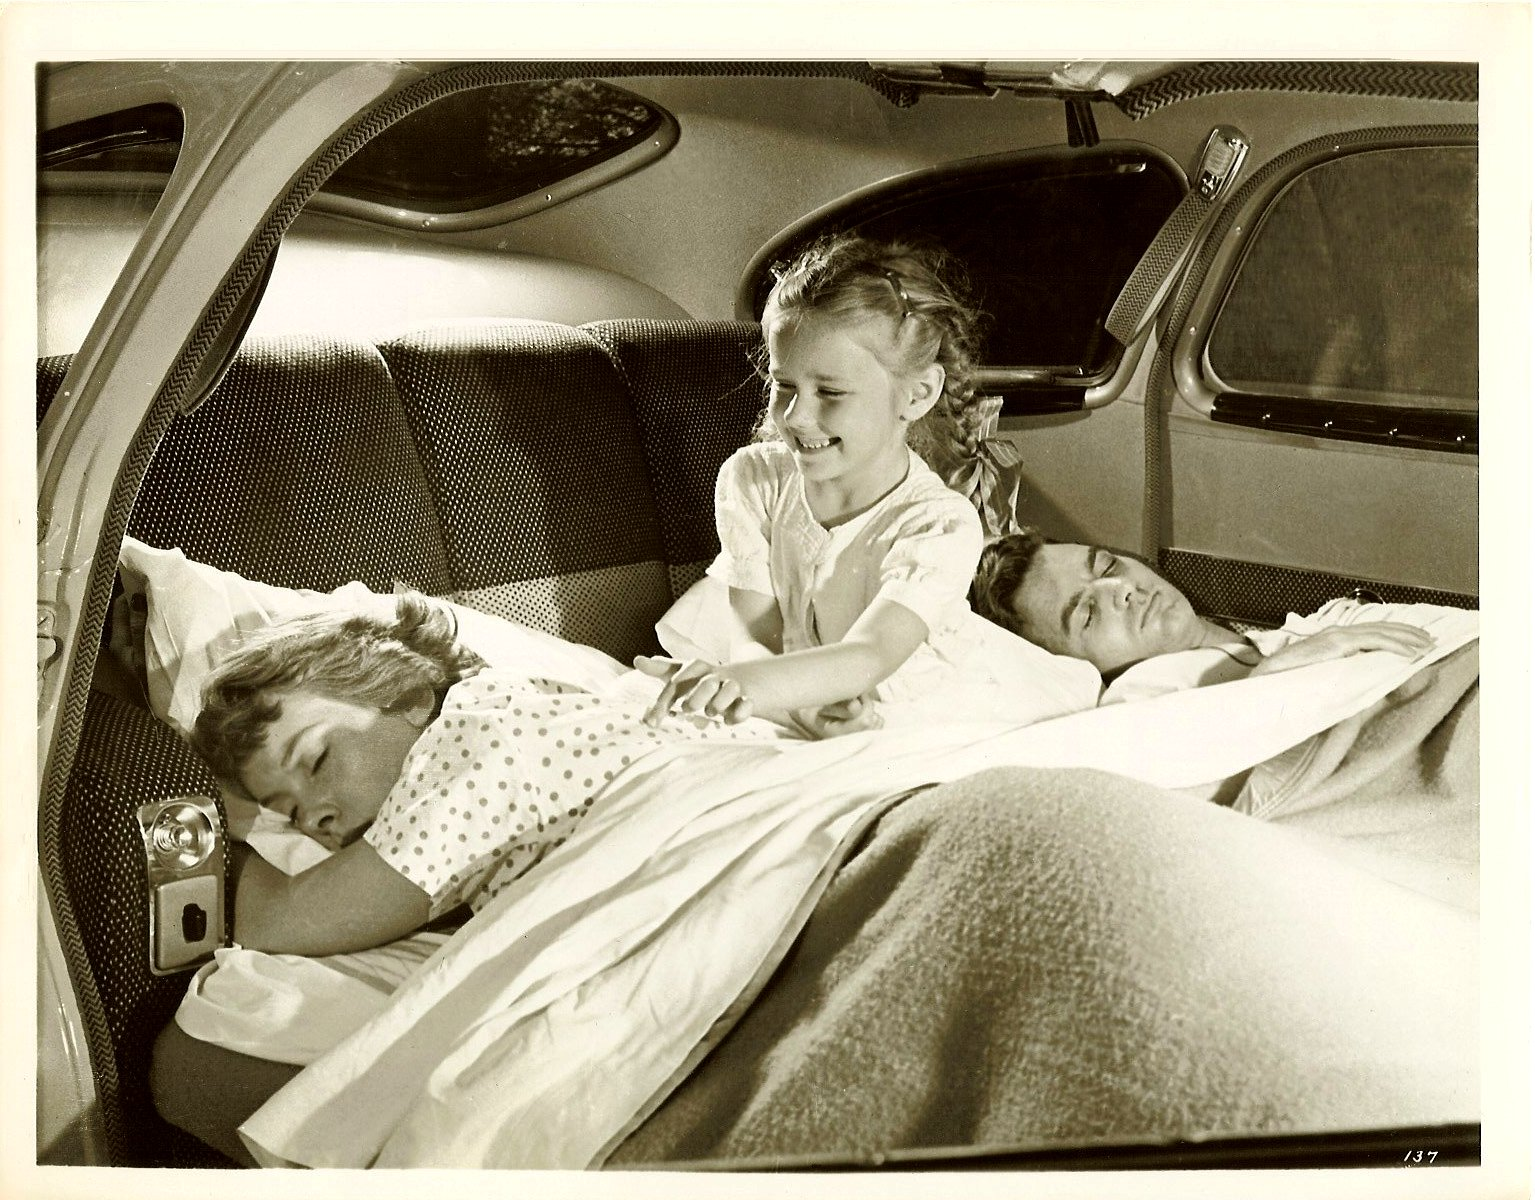 1951 NASH Twin Beds In 1951 NASH (Cut-away of fold-down bed and sleeping family.) 10″x8″ Black & White photograph Photo George Krager PIX Incorporated New York City Photo No. 137